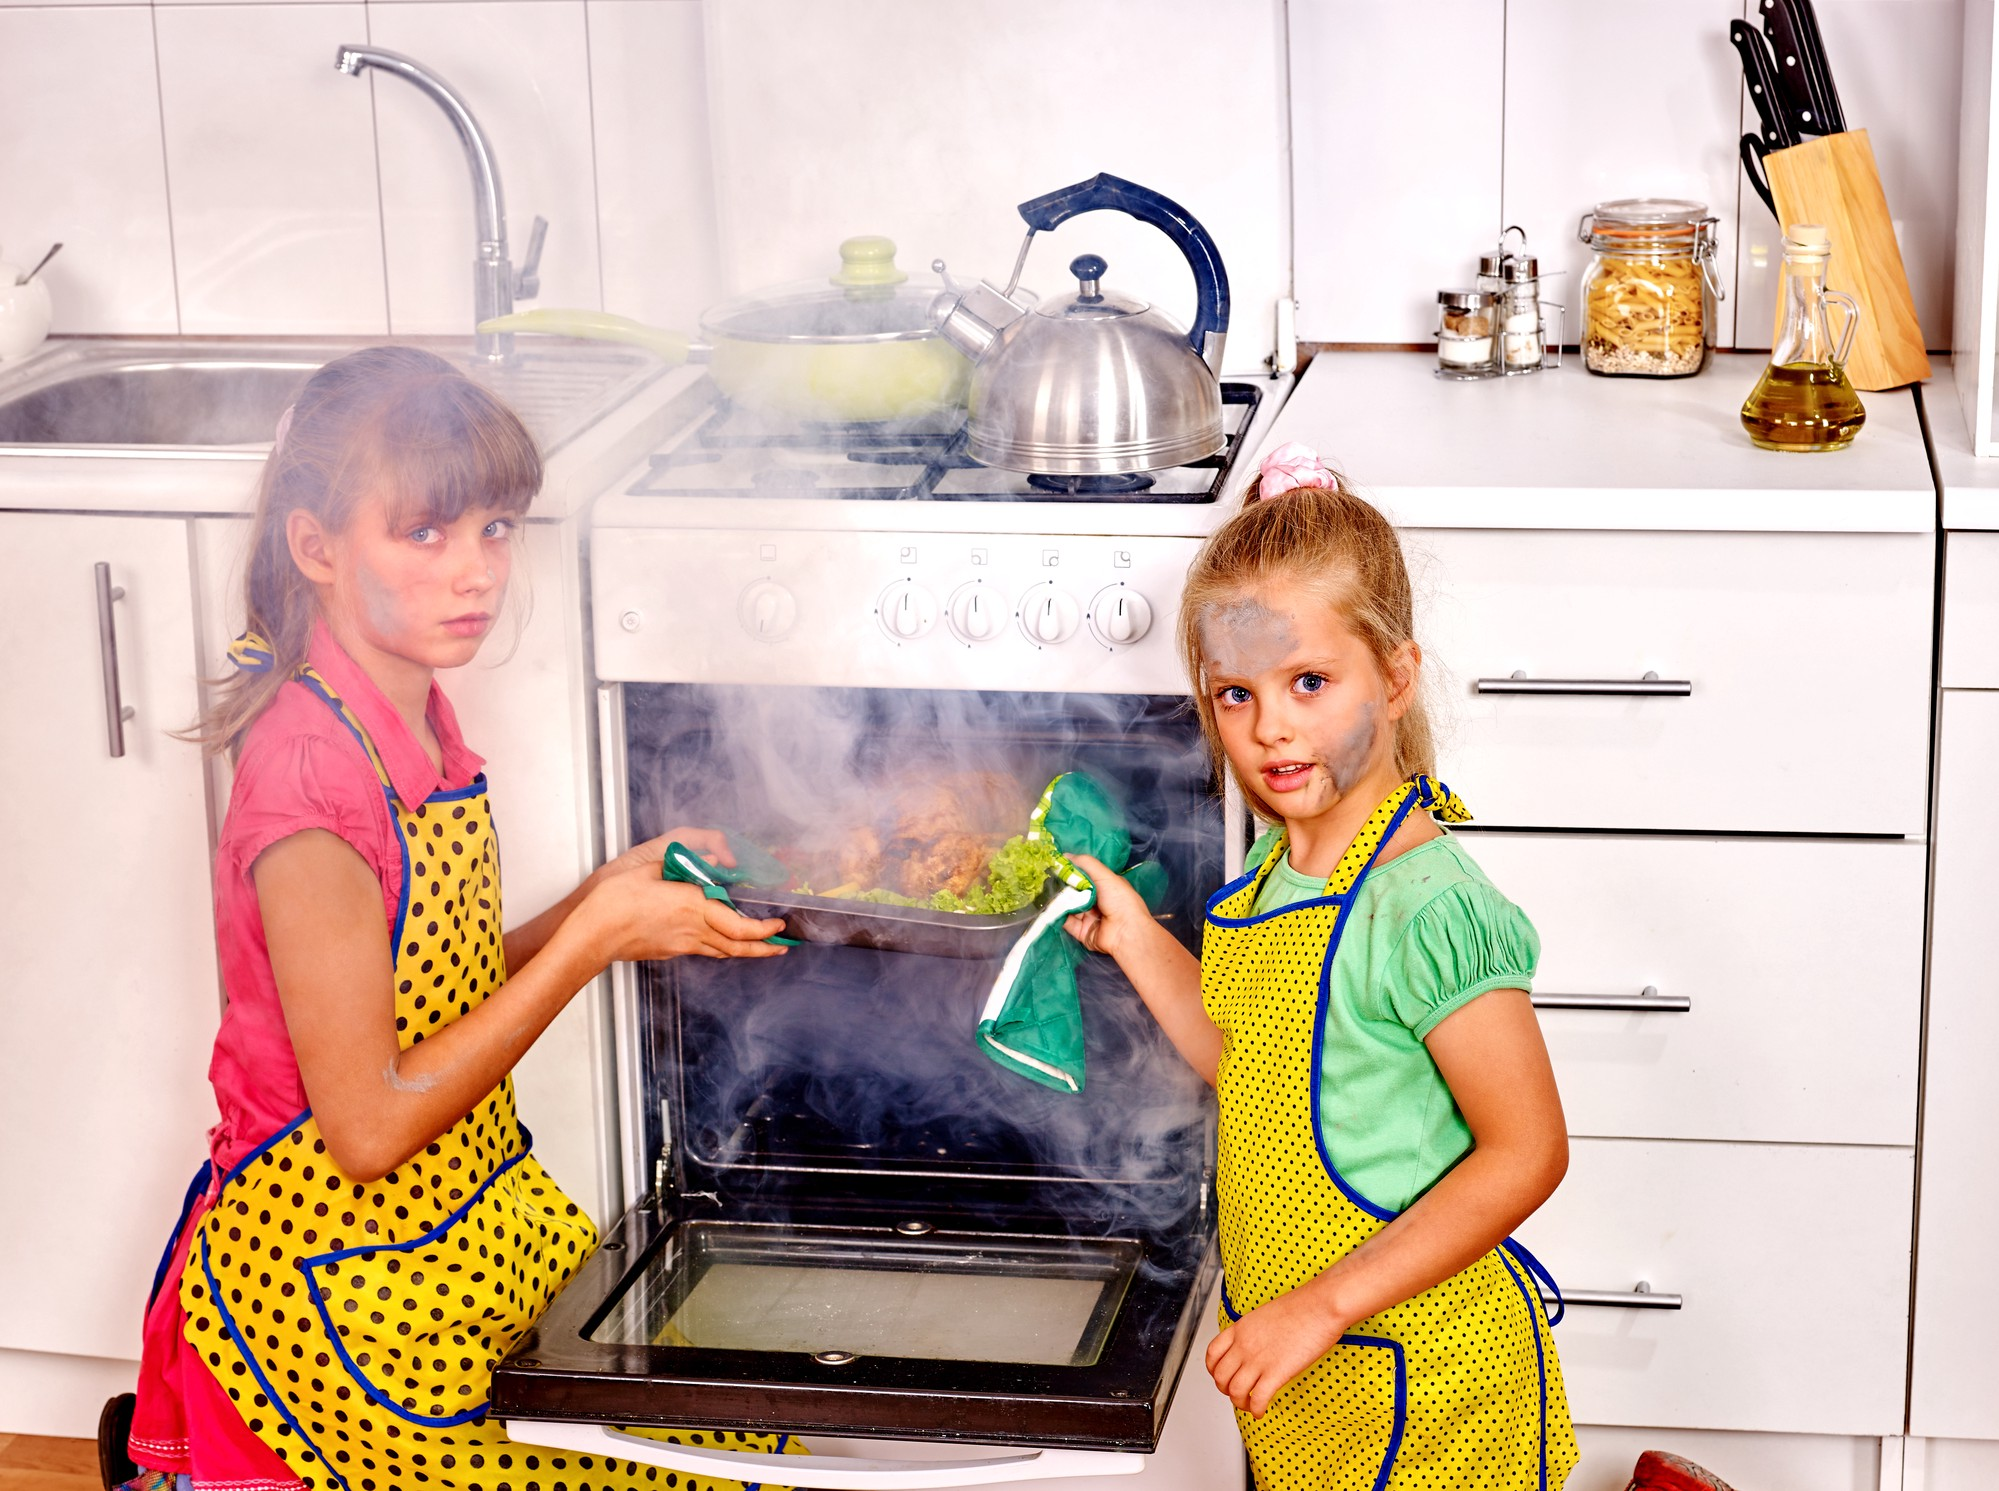 We Nearly Burned The House Down When Our Parents Let Us Stay